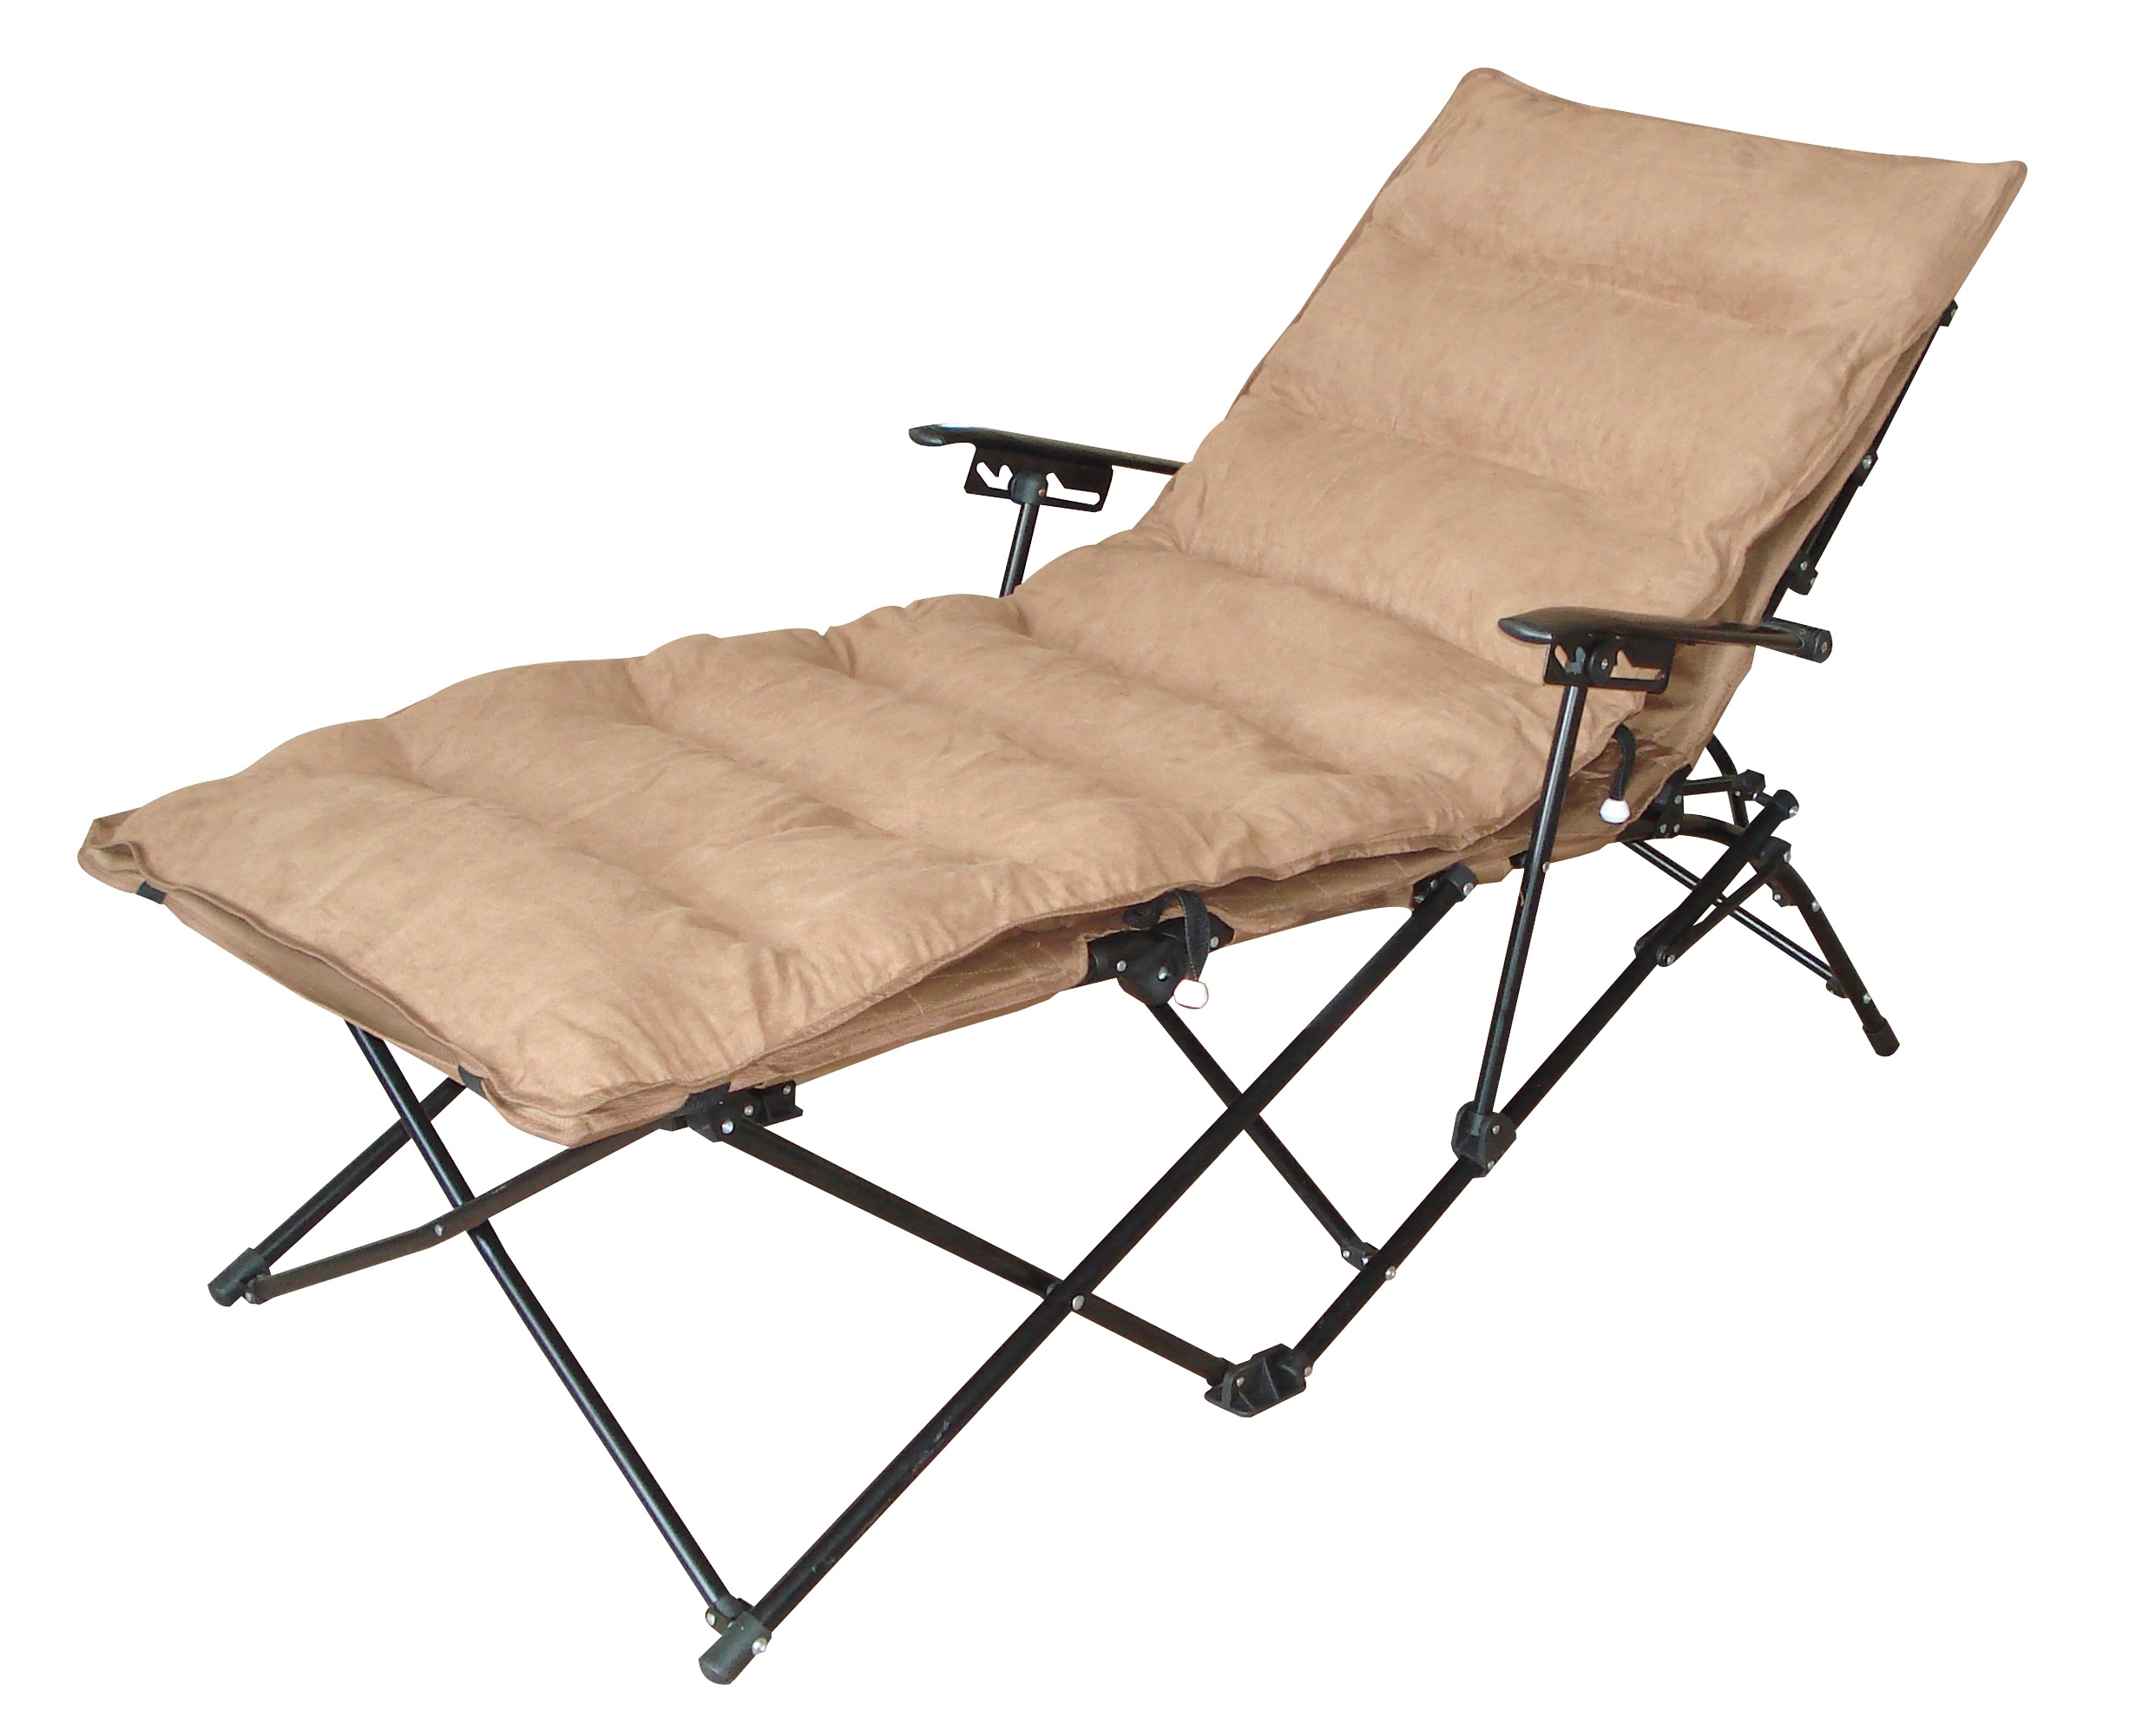 Favorite Jelly Chaise Lounge Chairs Intended For Outdoor : Outdoor Lounge Chairs Clearance Beach Chairs On Sale (View 2 of 15)